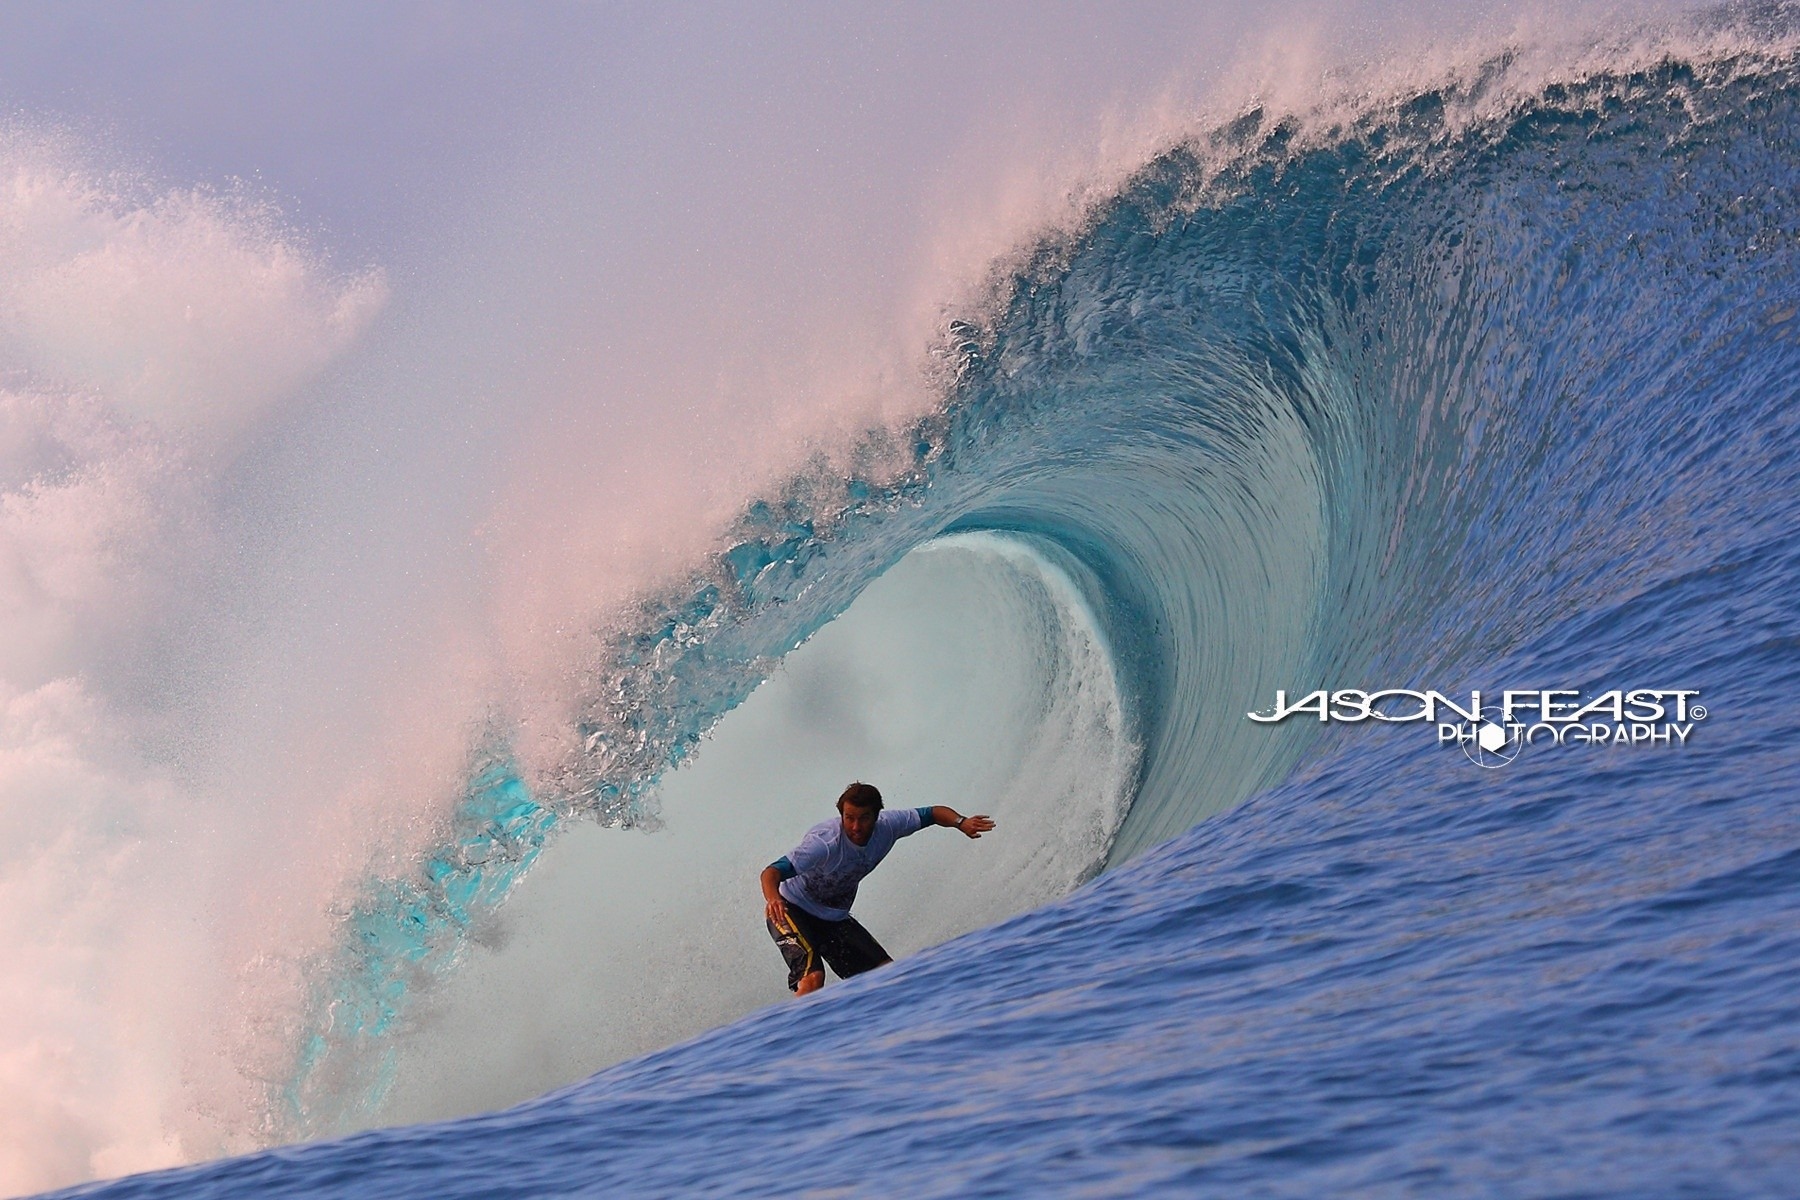 Jason Feast's photo of Teahupoo